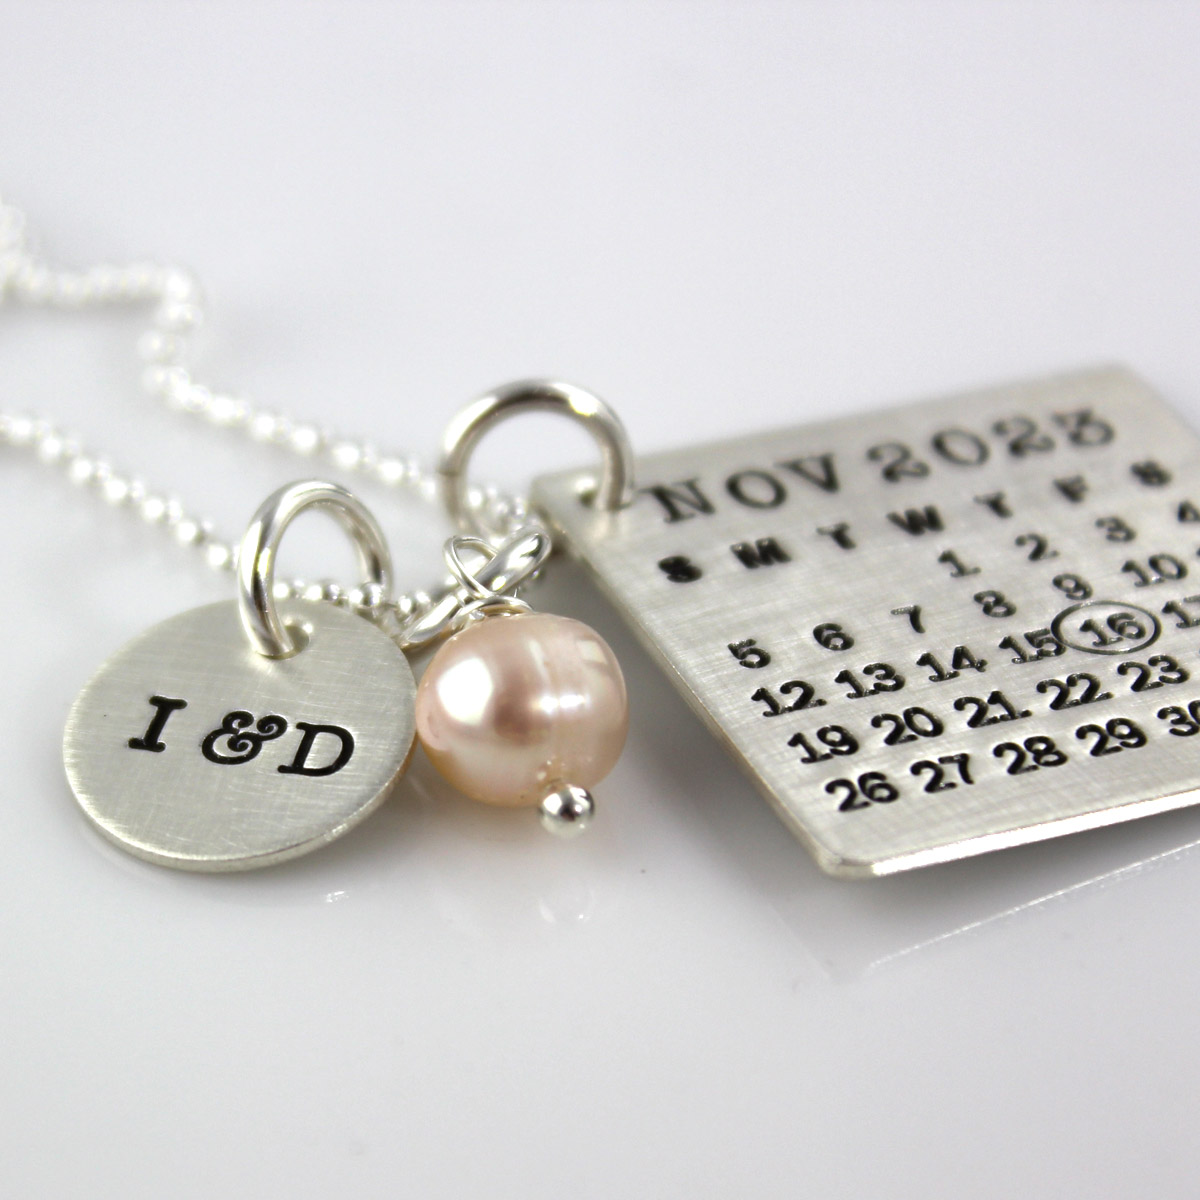 Mark Your Calendar Necklace with You & Me Charm